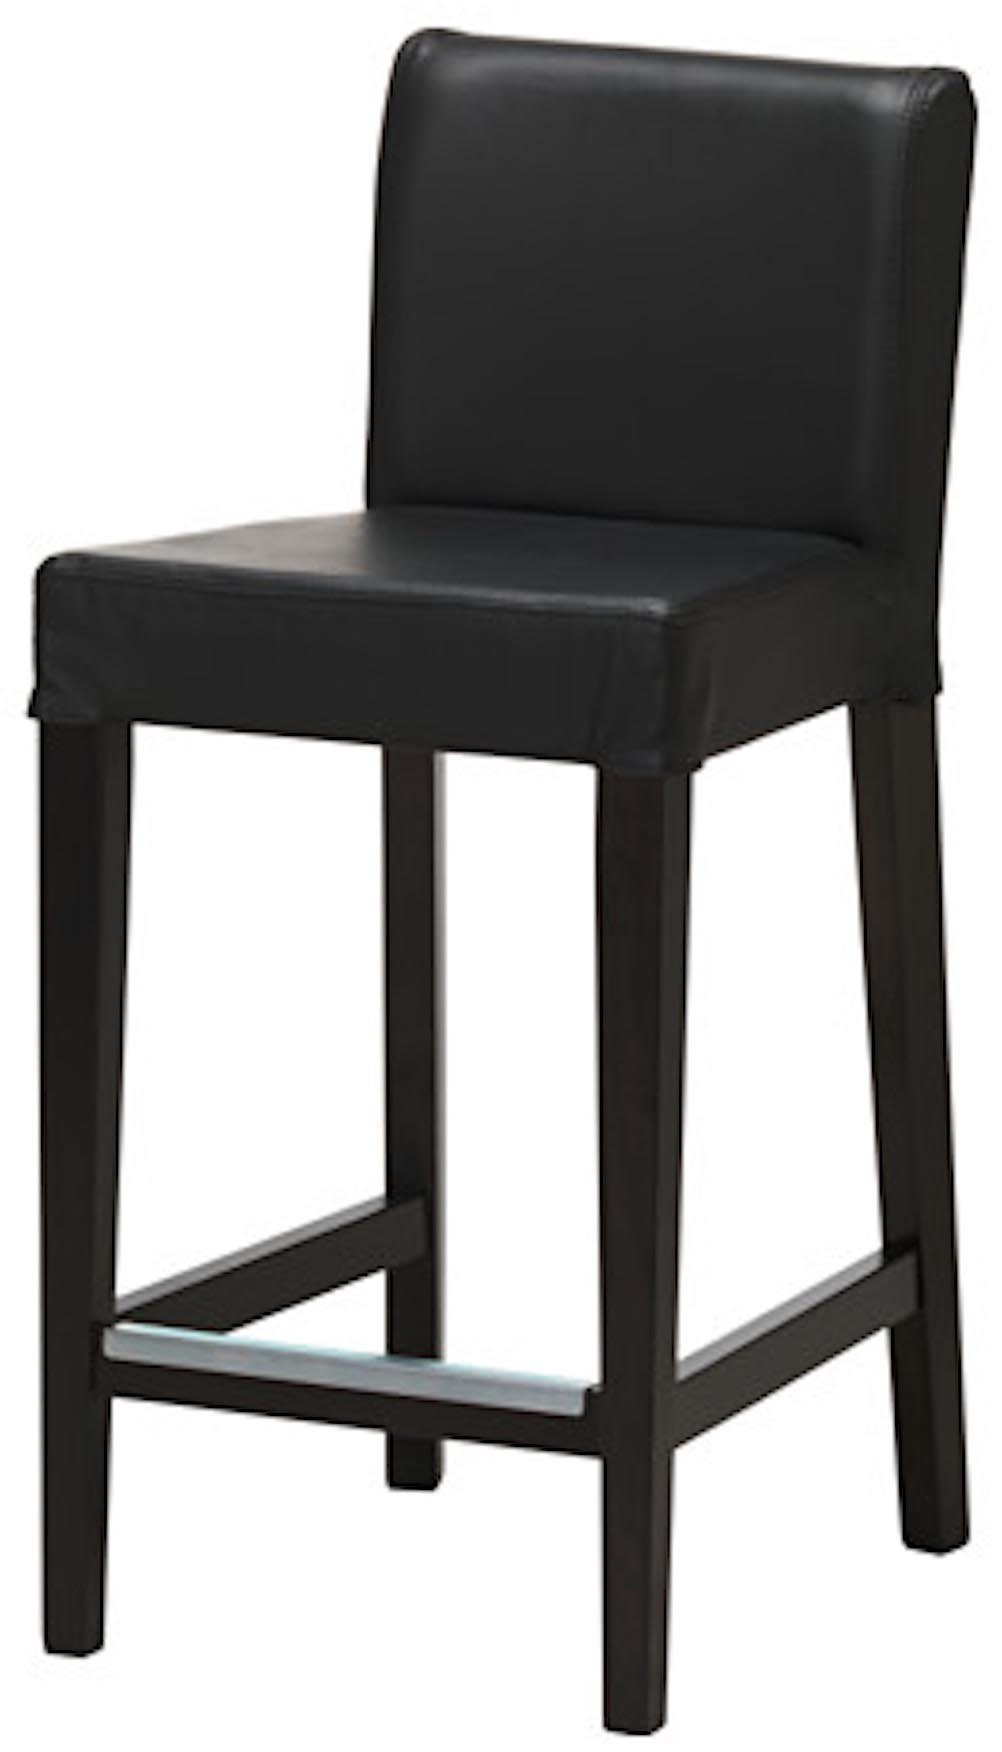 The PU Leather Henriksdal Bar Stool With Backrest Cover Replacement Is Custom Made for Ikea Henriksdal Bar Stool Chair Slipcover